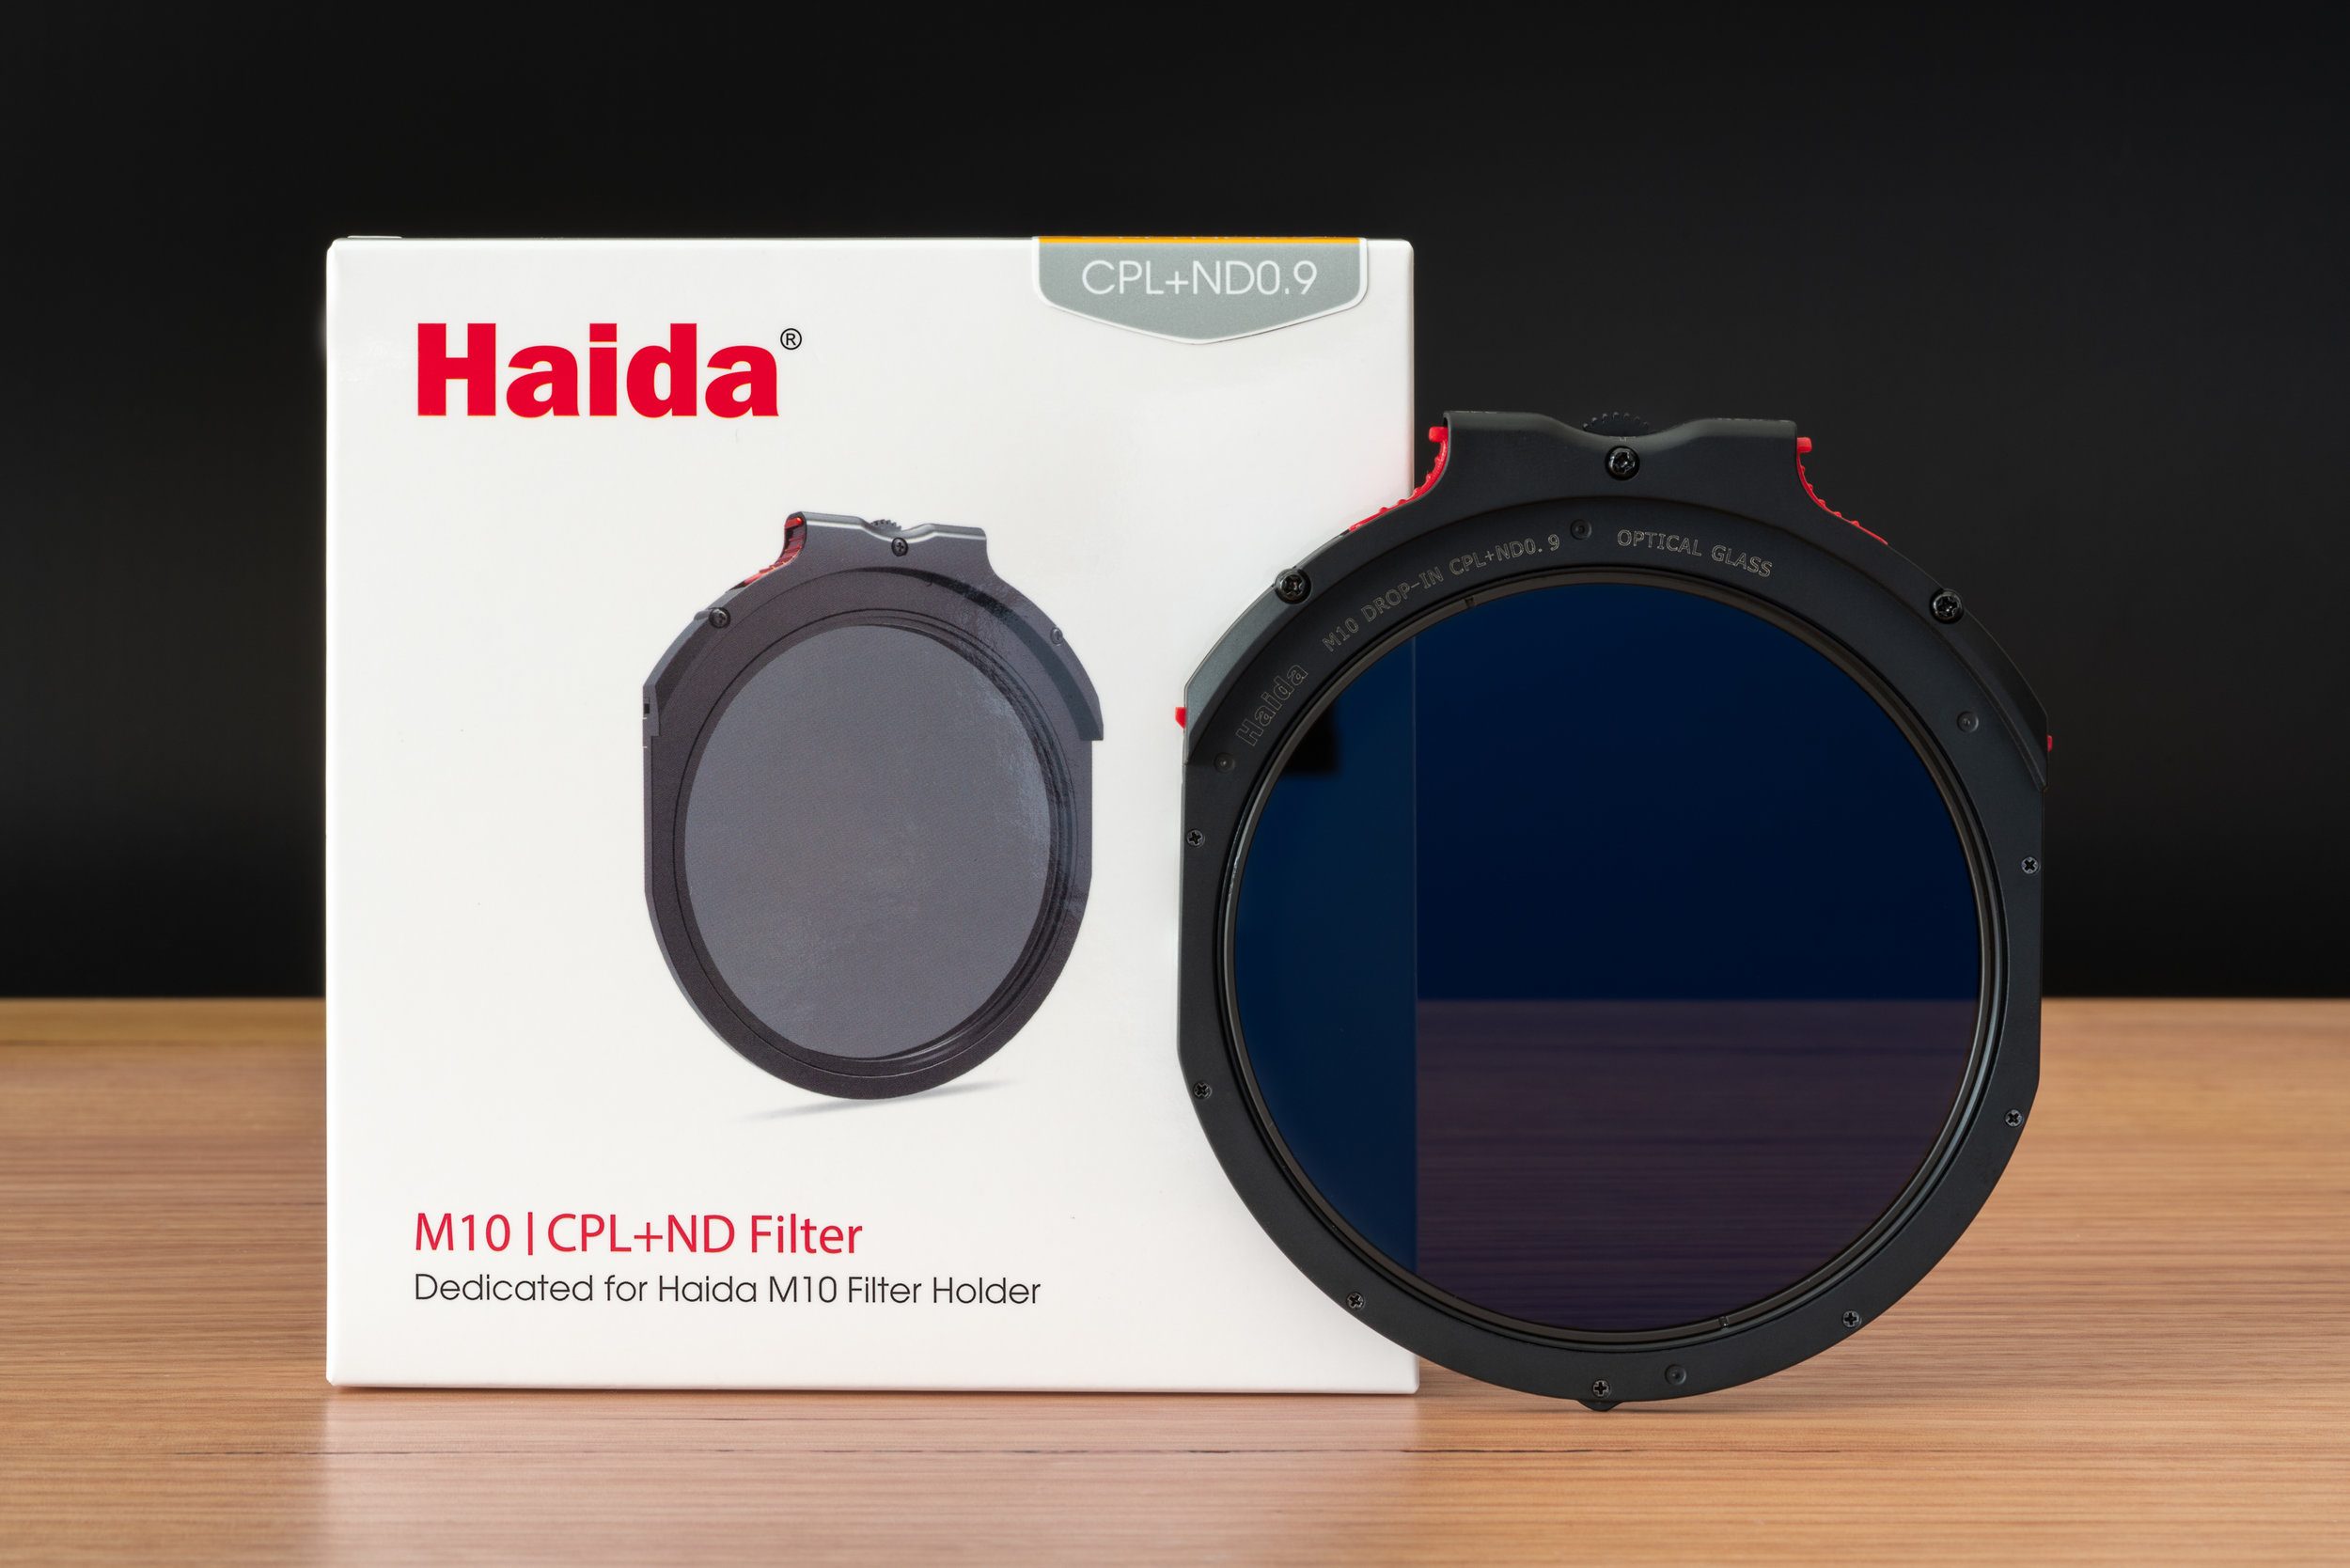 Haida M10 CPL + ND 0.9 (3-Stop) With Packaging